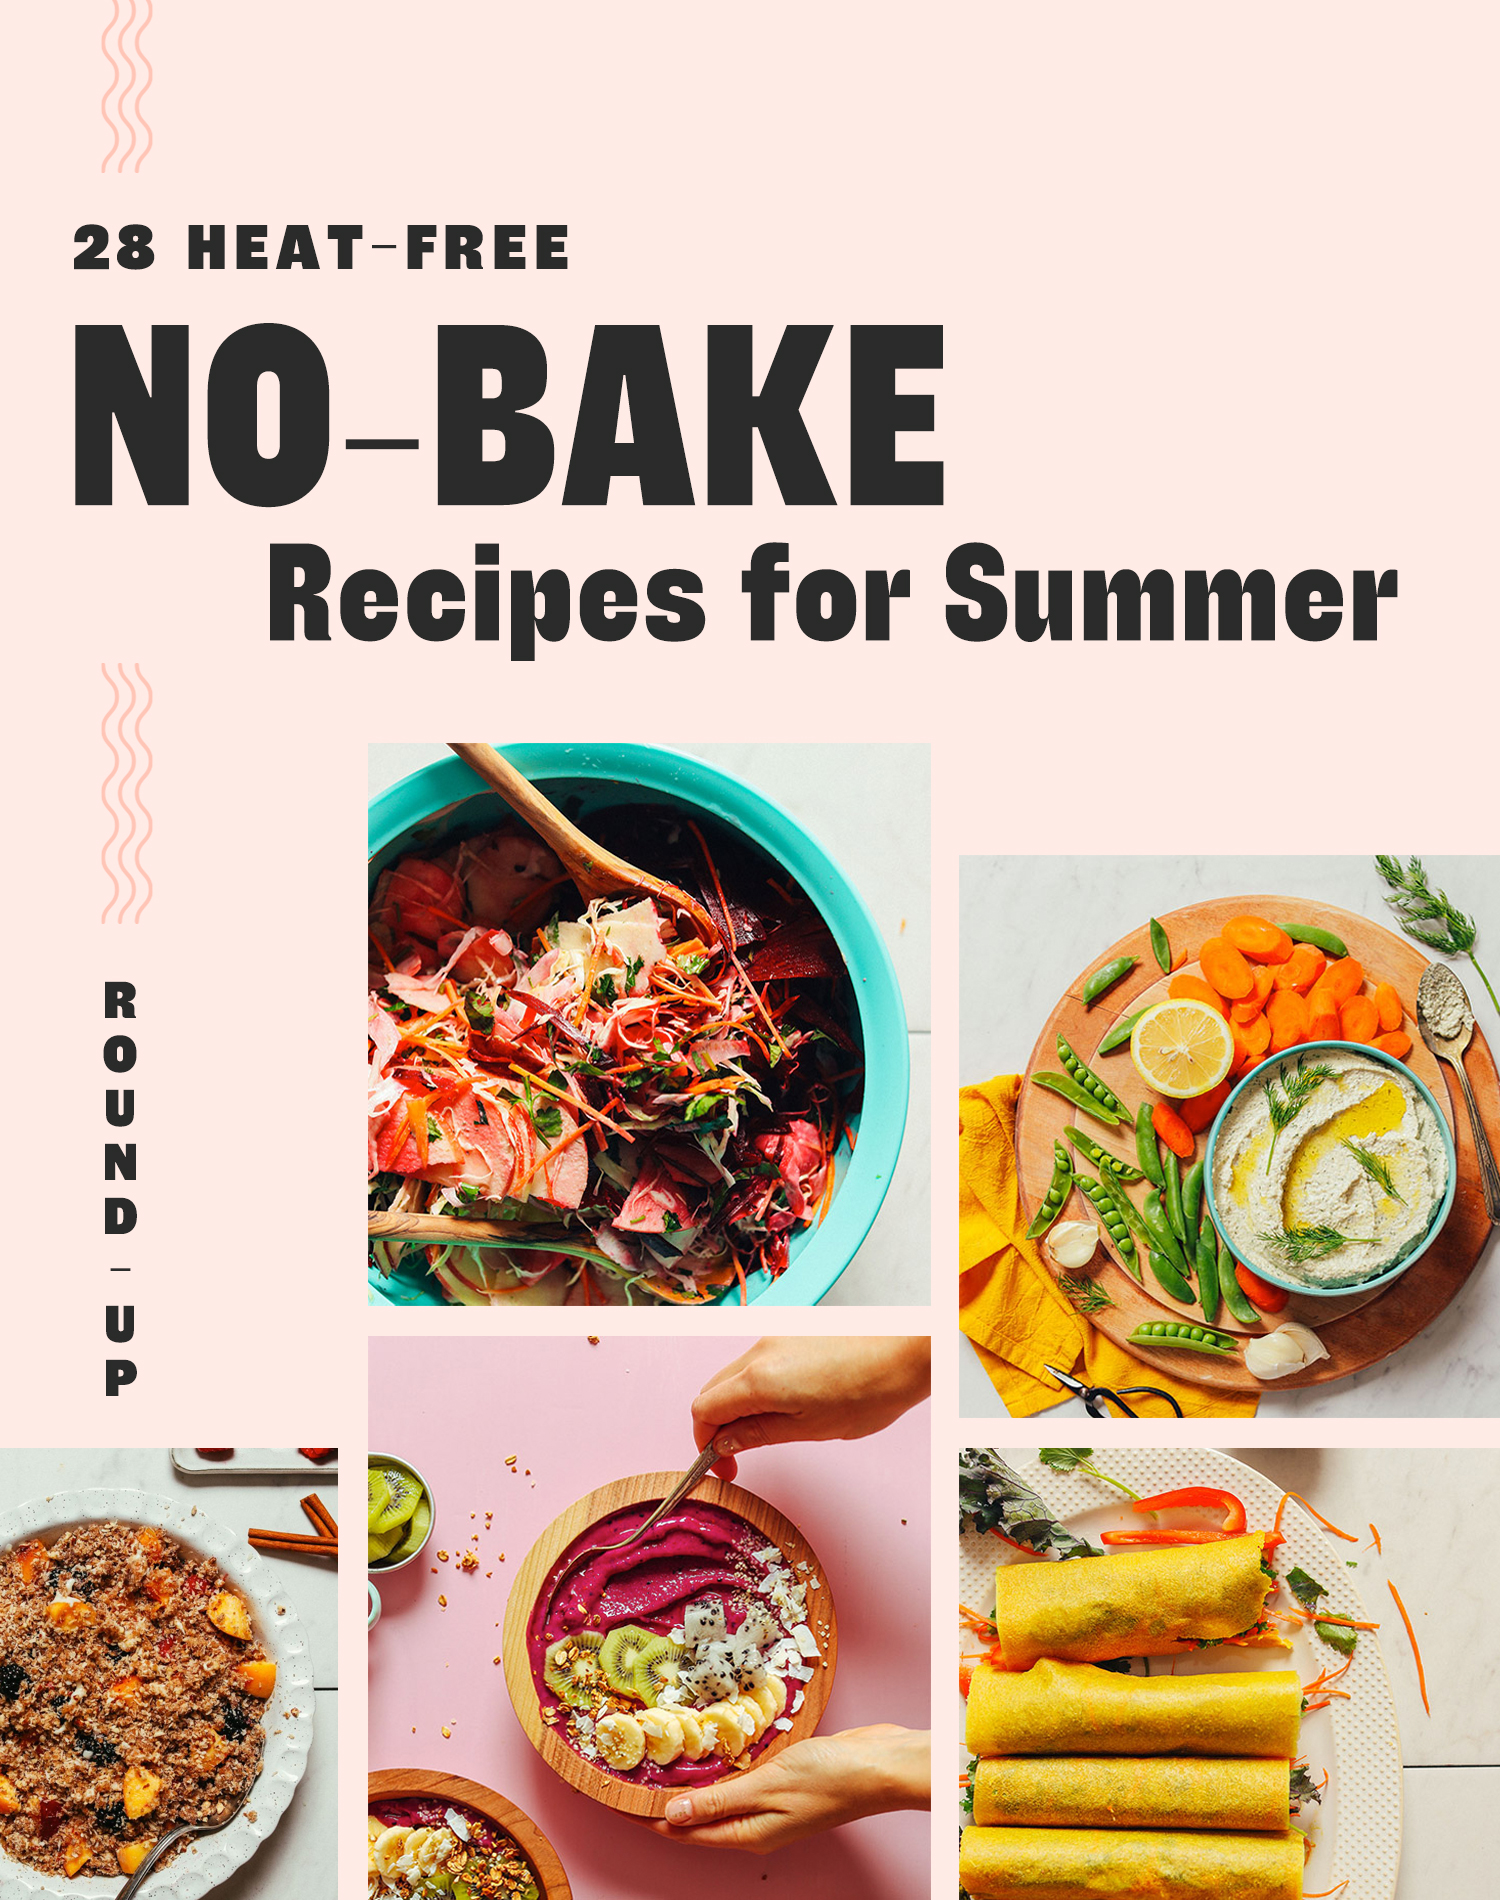 Assortment of summer recipes that don't require an oven